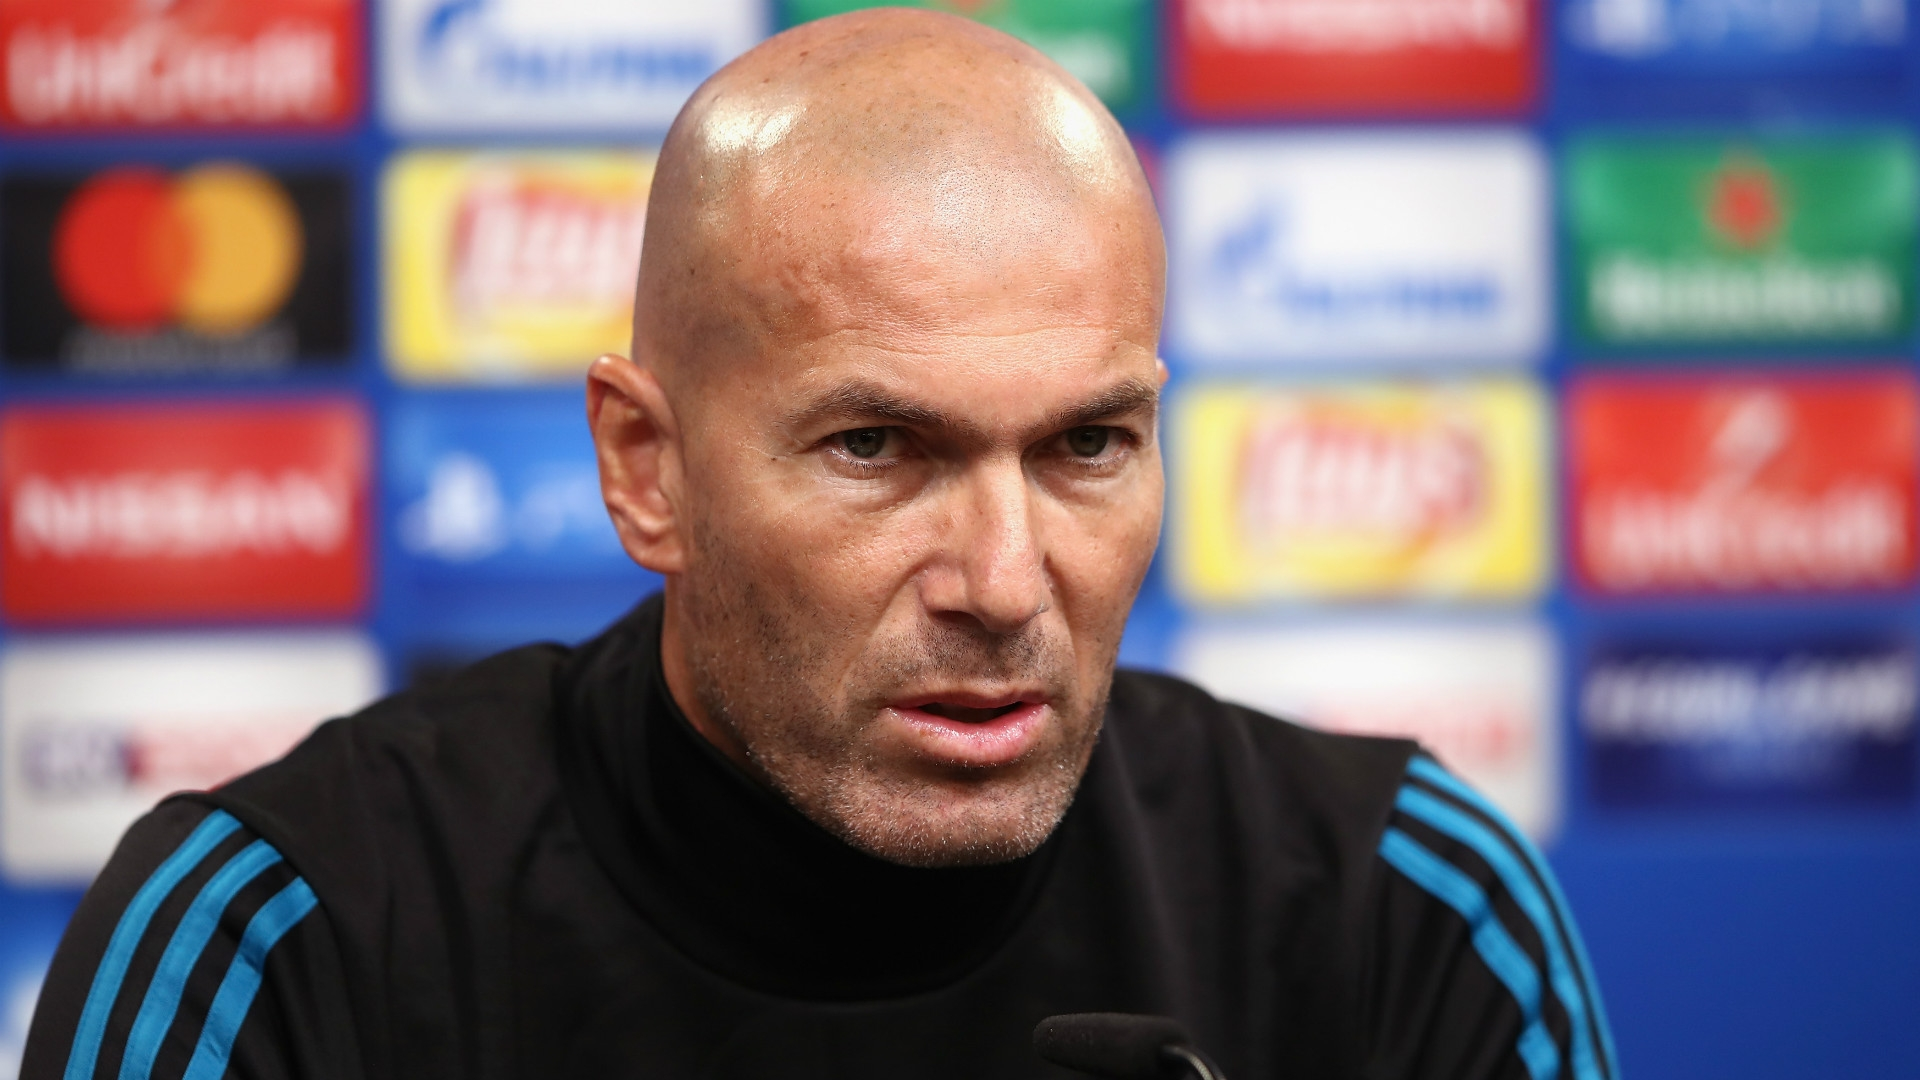 Zidane, manager of Real Madrid